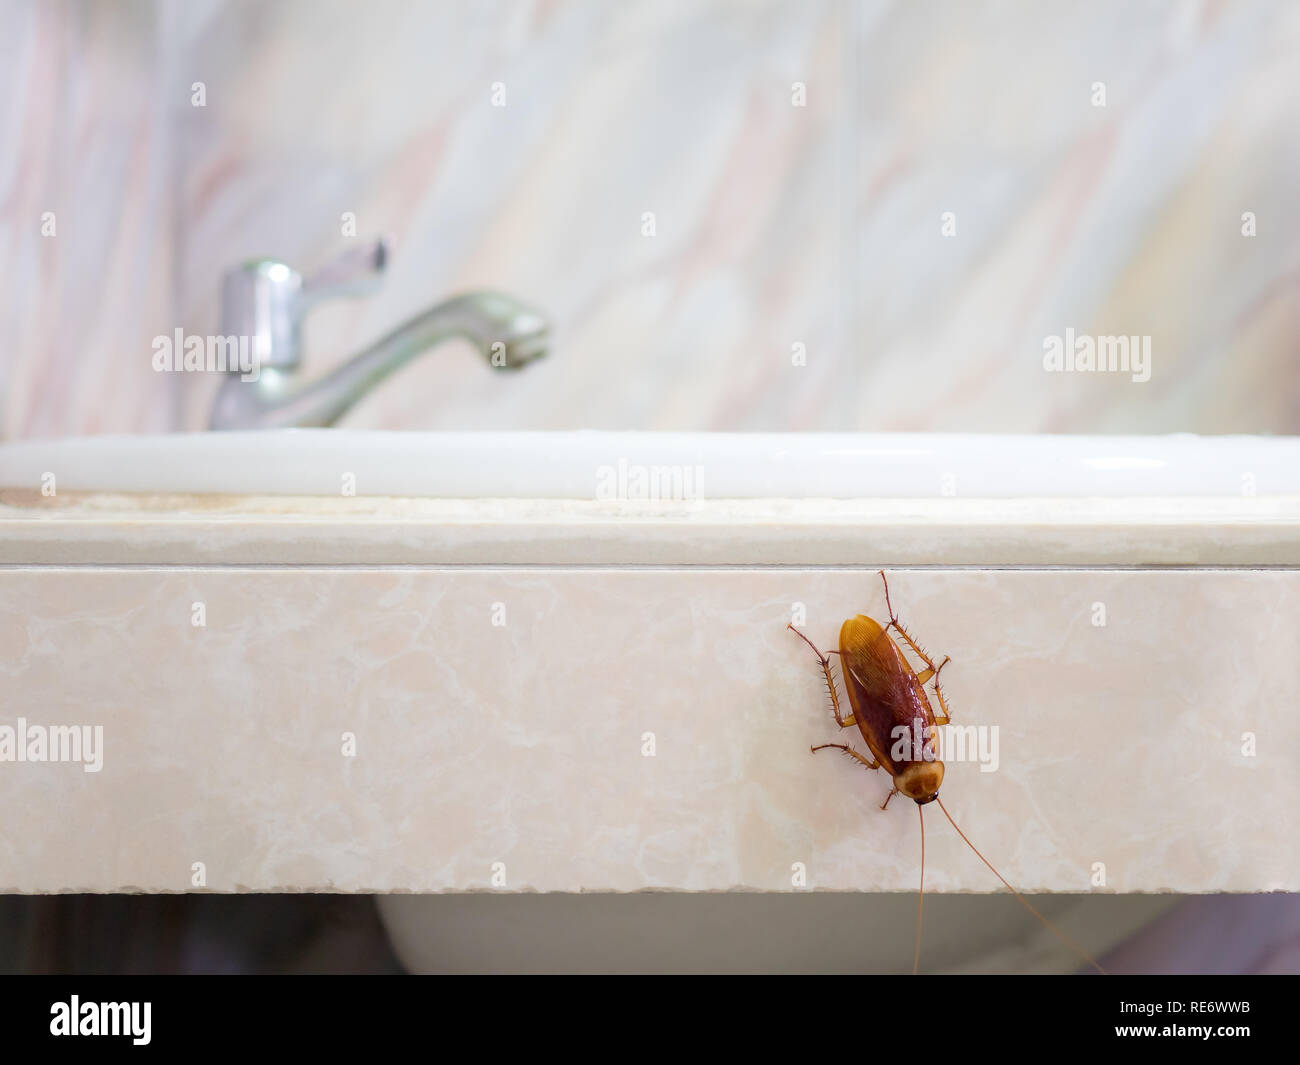 Close-up image of cockroach in house on background of water closet. - Stock Image